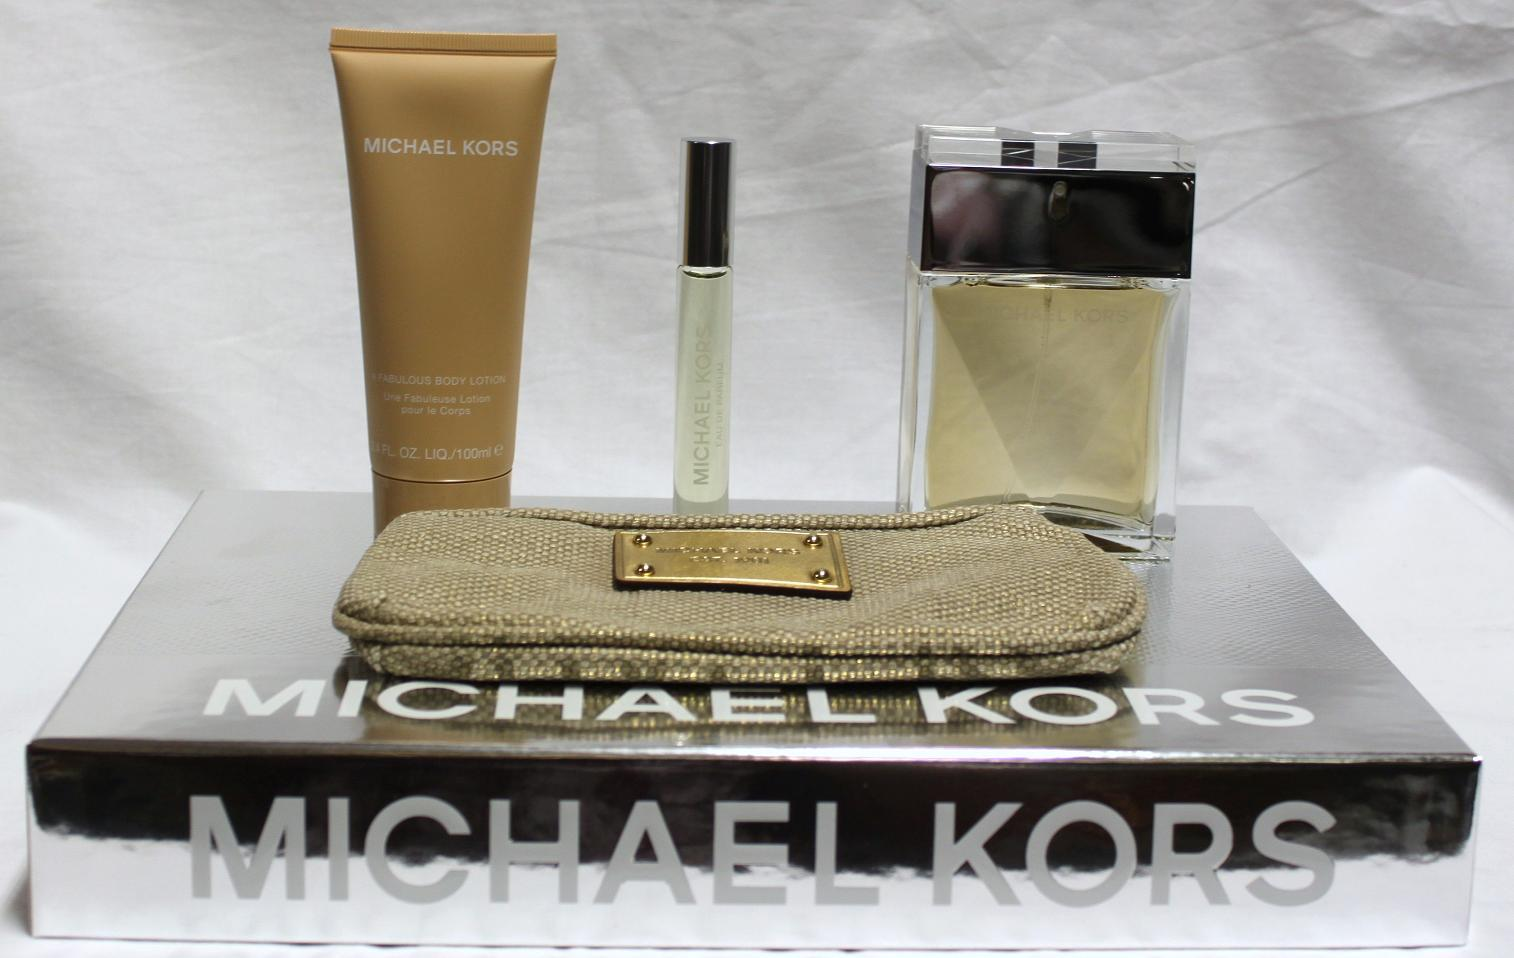 MICHAEL KORS BY MICHAEL KORS 4PCS SET FOR WOMAN 3.4 FL.OZ / 100 ML EAU DE PARFUM